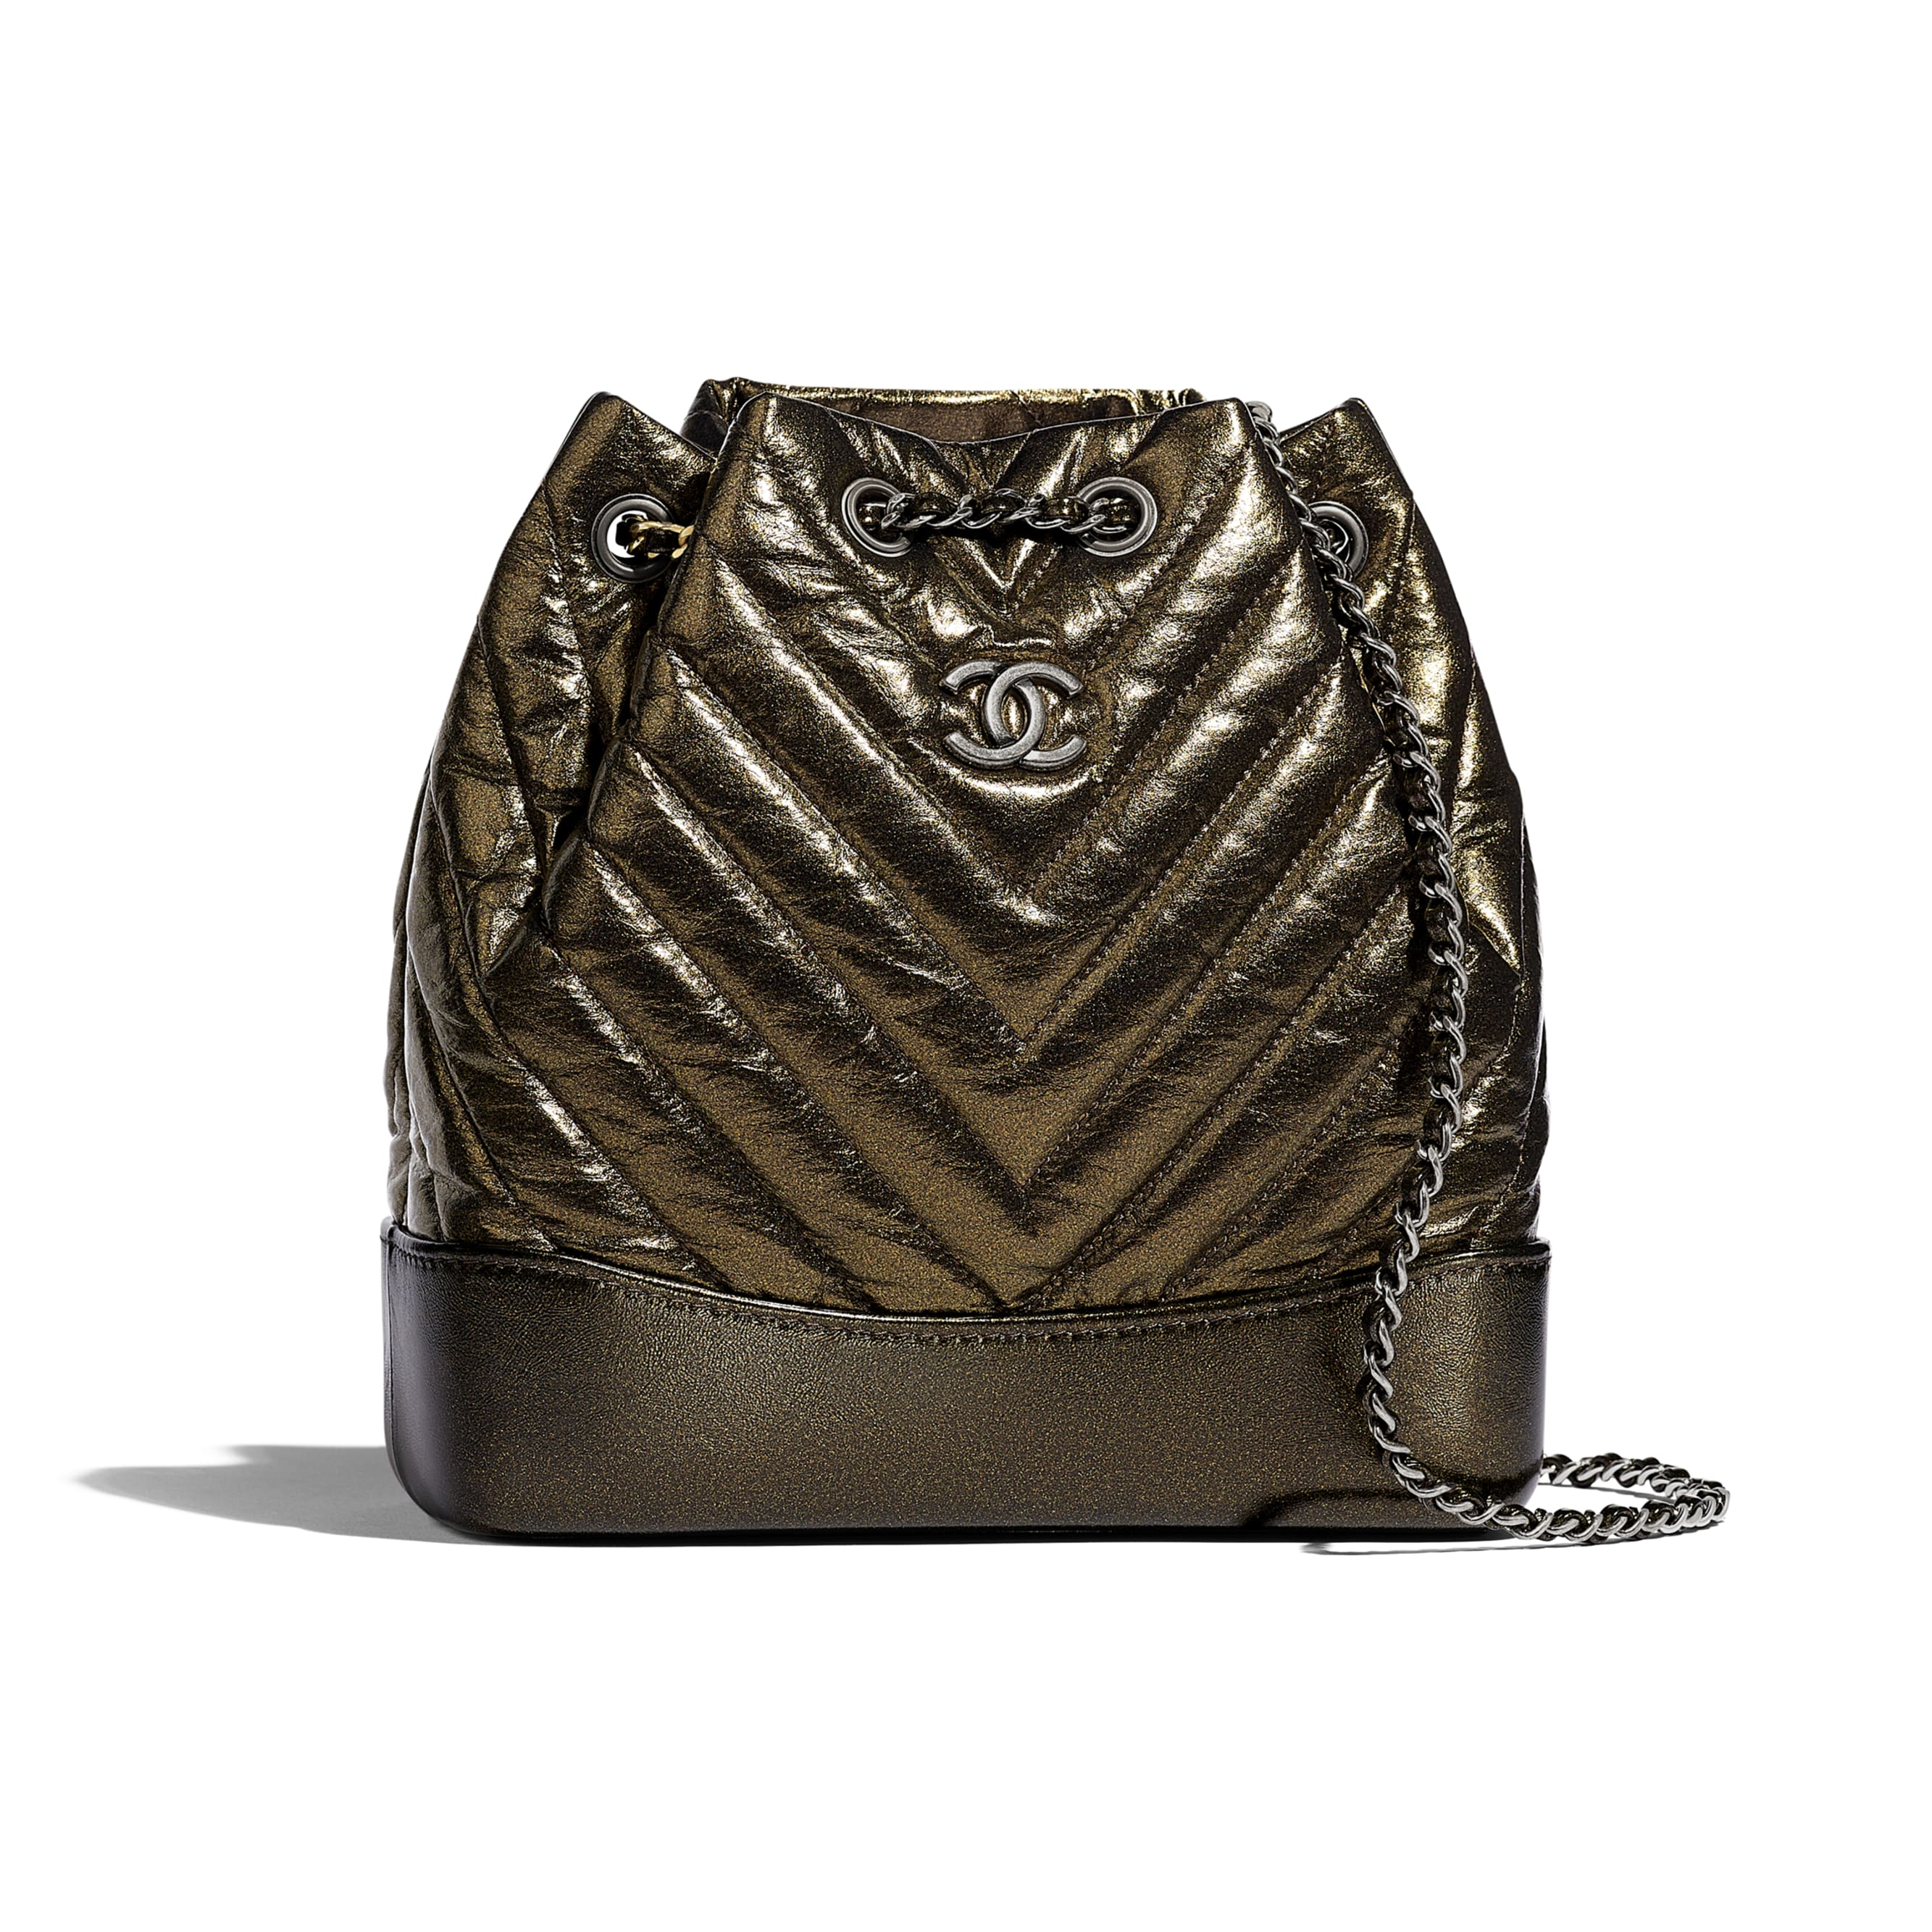 CHANEL'S GABRIELLE Small Backpack - Gold - Aged Calfskin, Silver-Tone & Gold-Tone Metal - Default view - see standard sized version